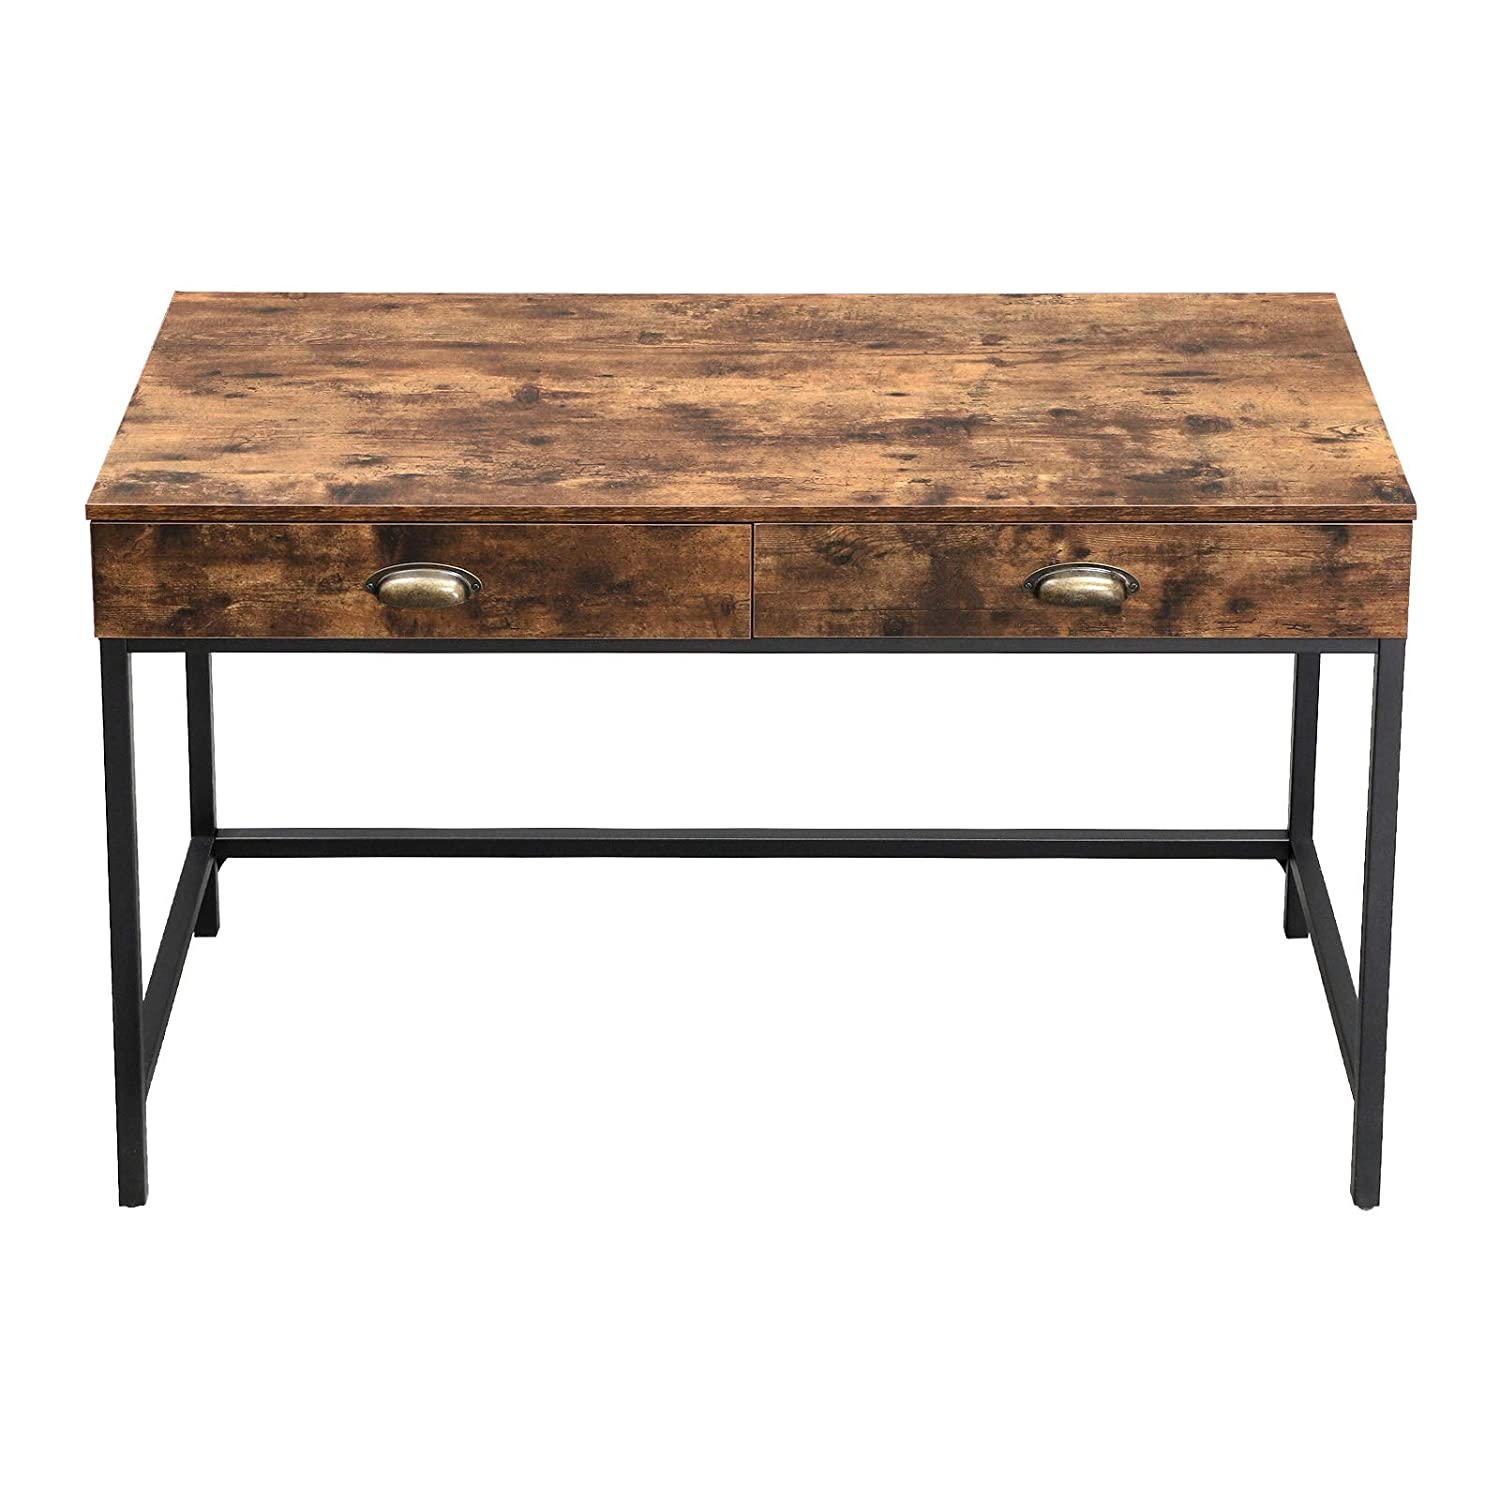 Genial Amazon.com: VASAGLE Industrial Computer Writing Desk With Drawers, Space  Saving Study Desk With Storage, For Home Office, Easy Assembly, Rustic  Brown ...